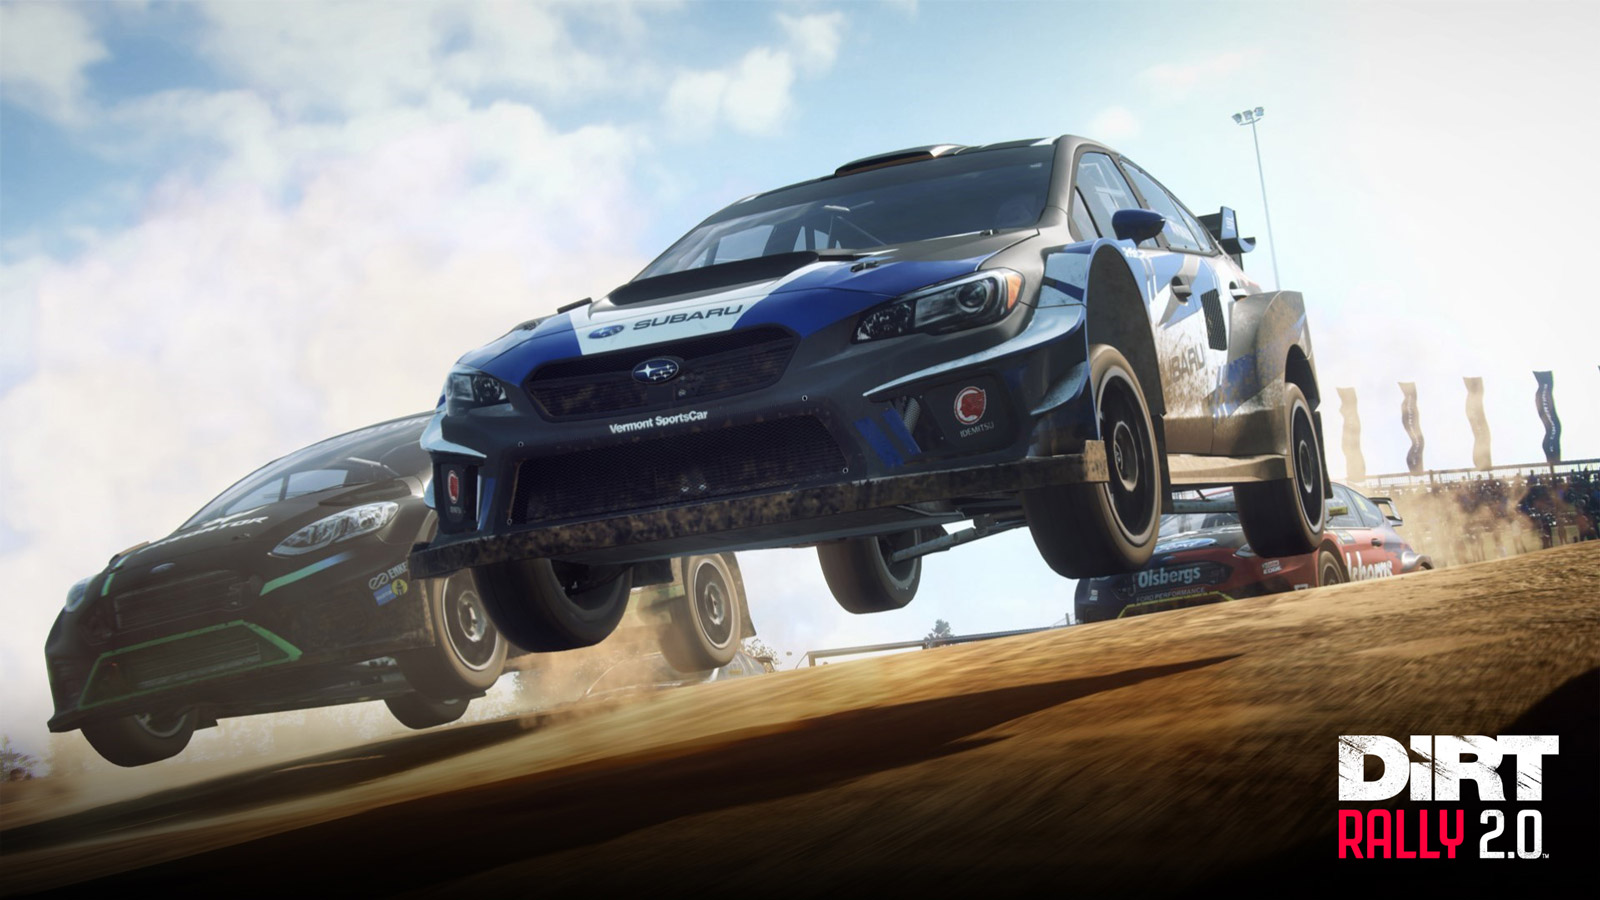 Free Dirt Rally 2.0 Wallpaper in 1600x900